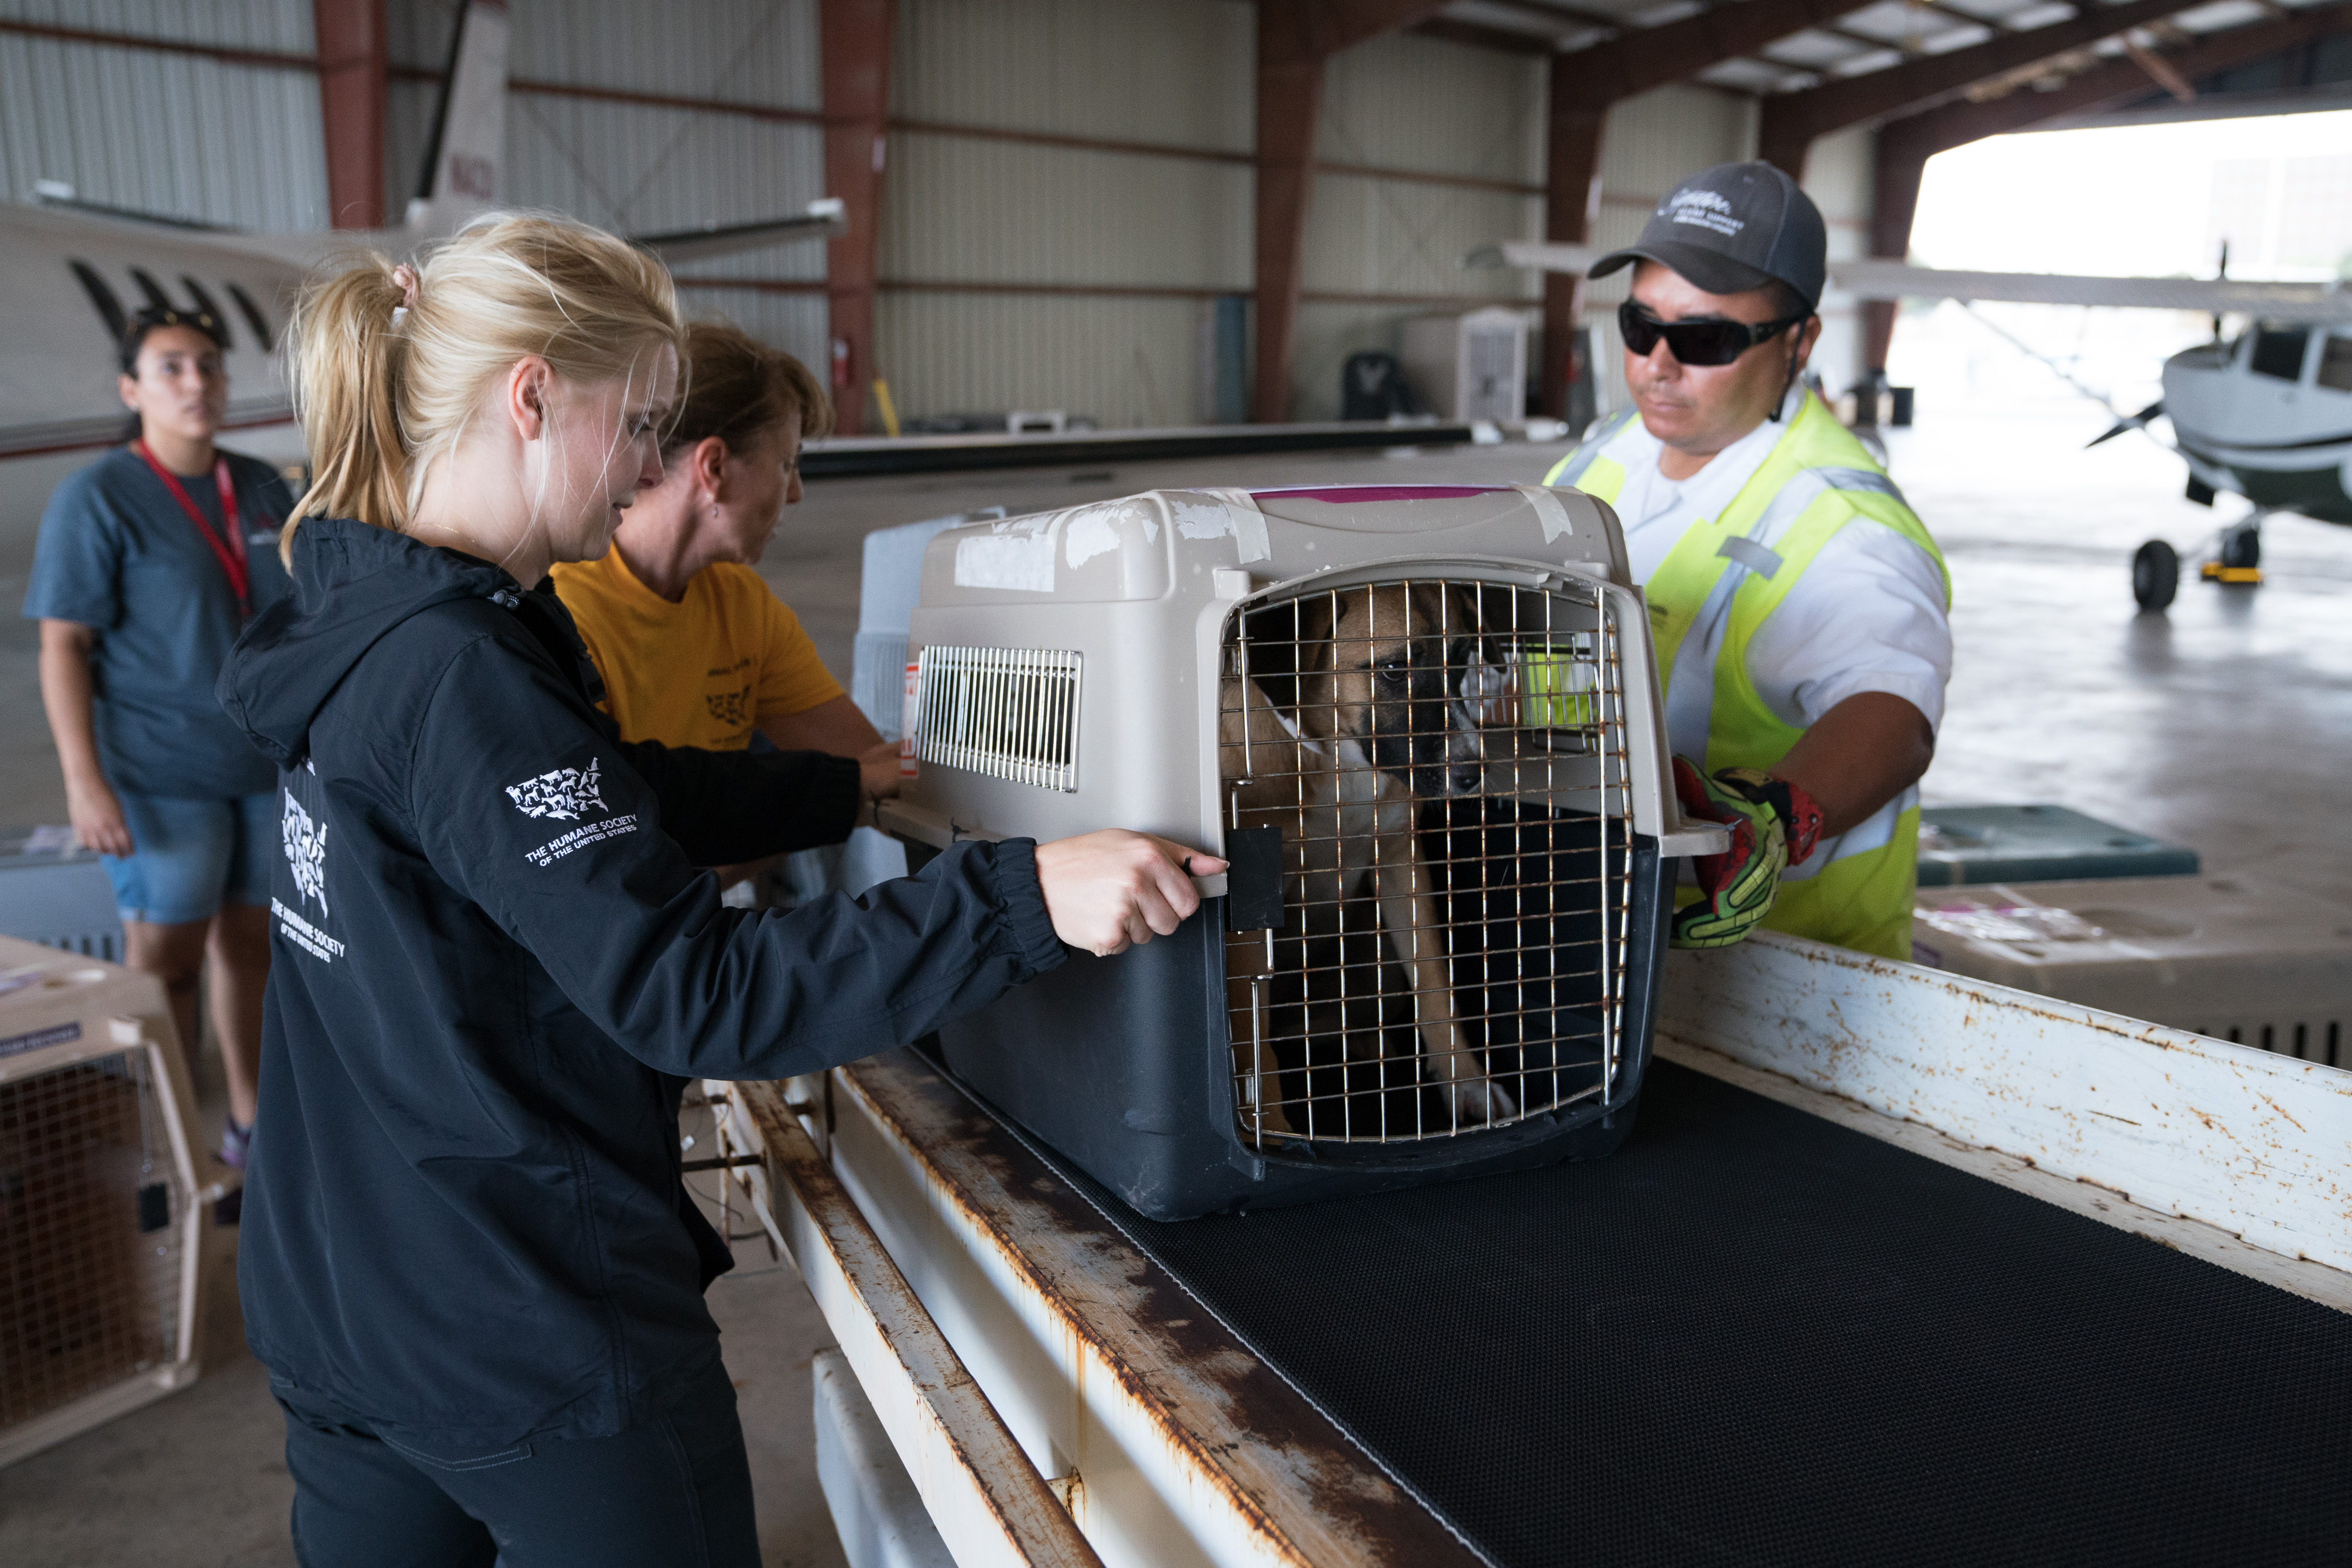 The Humane Society of the United States Texas State Director Katie Jarl, left, helps HSUS District Leader Shana Ellison load dogs onto a plane during The HSUS San Antonio Transport, Tuesday, Aug. 29, 2017, in San Antonio. Approximately one hundred dogs are being transported by Wings of Rescue to the east coast for adoption. (Darren Abate/AP Images for The Humane Society of the United States)